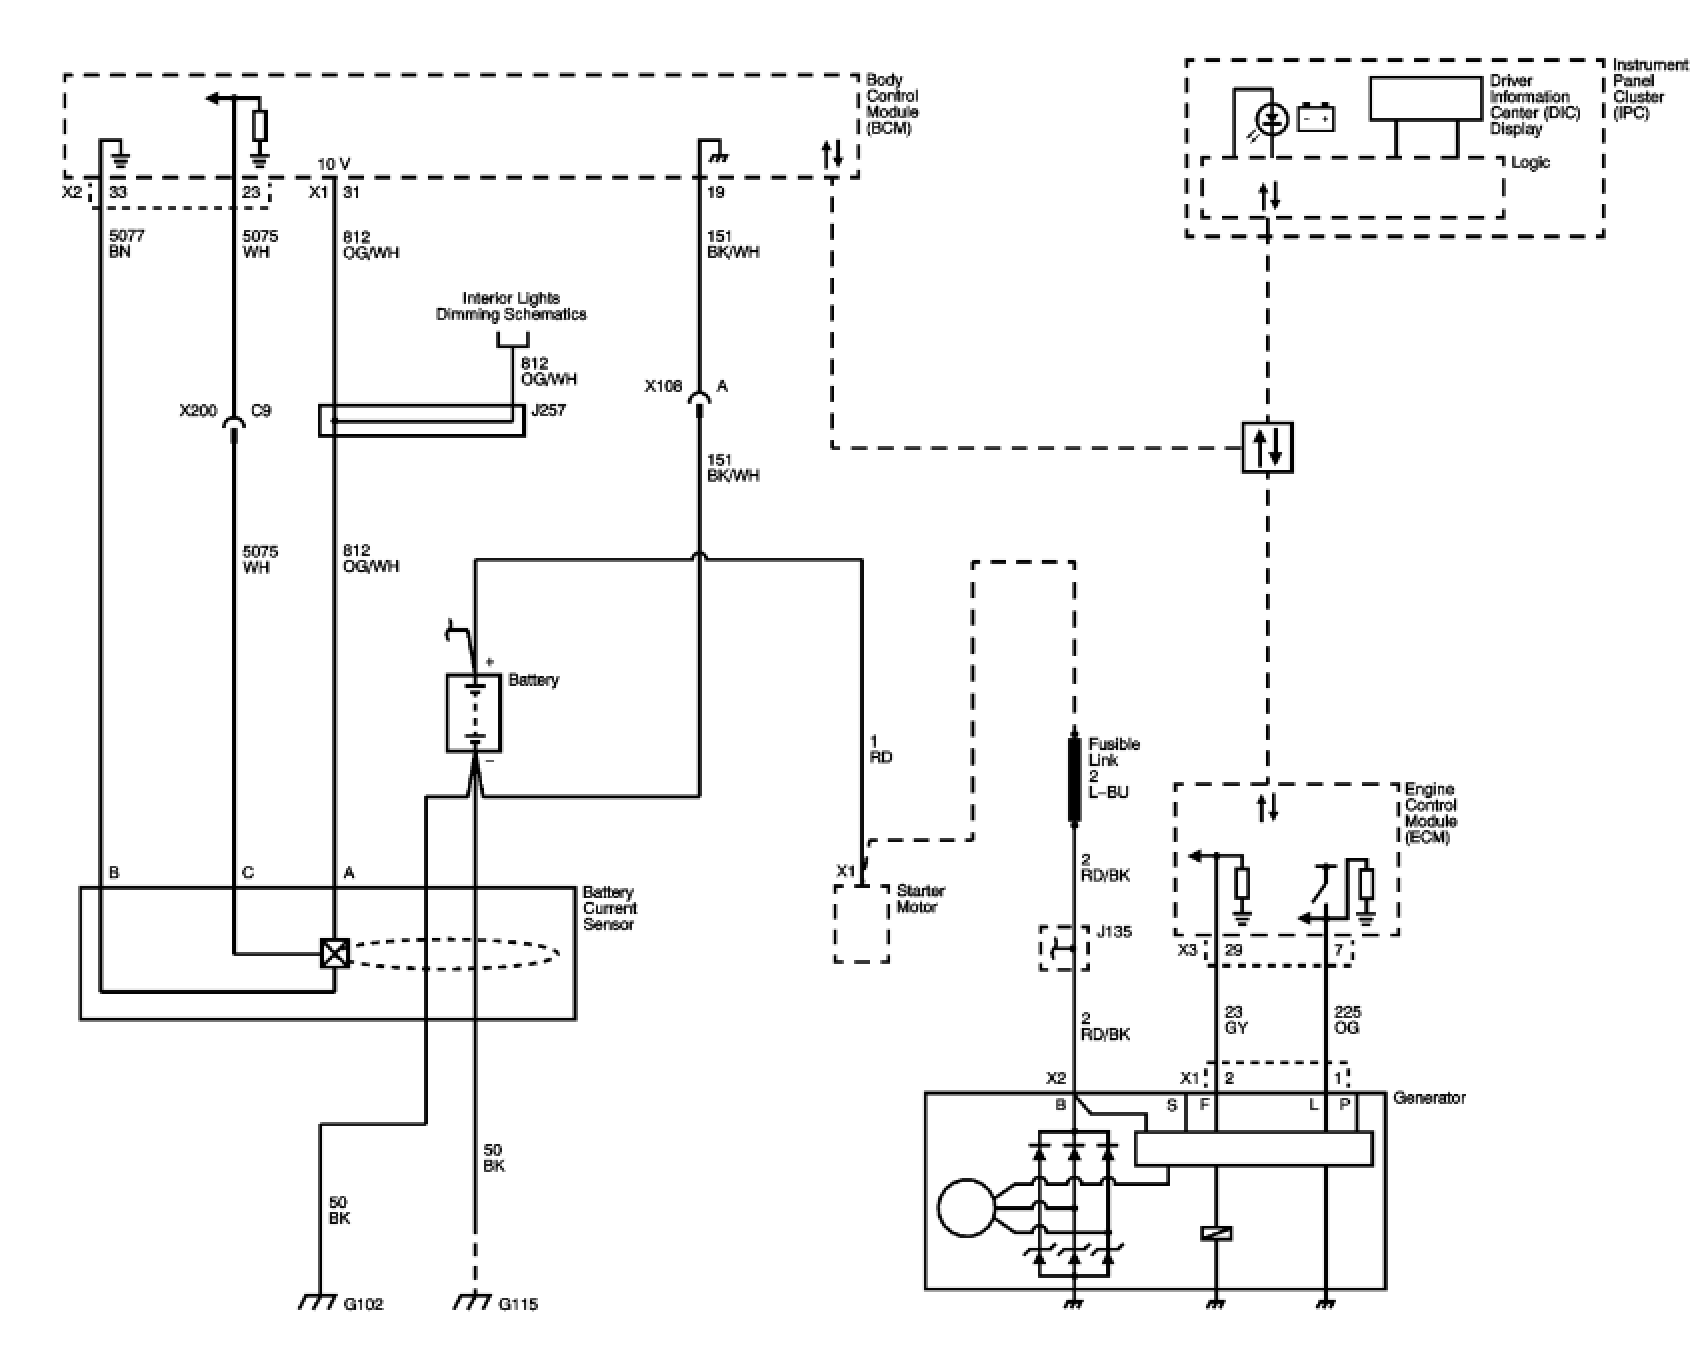 Wiring Diagram Chevrolet Uplander 2007